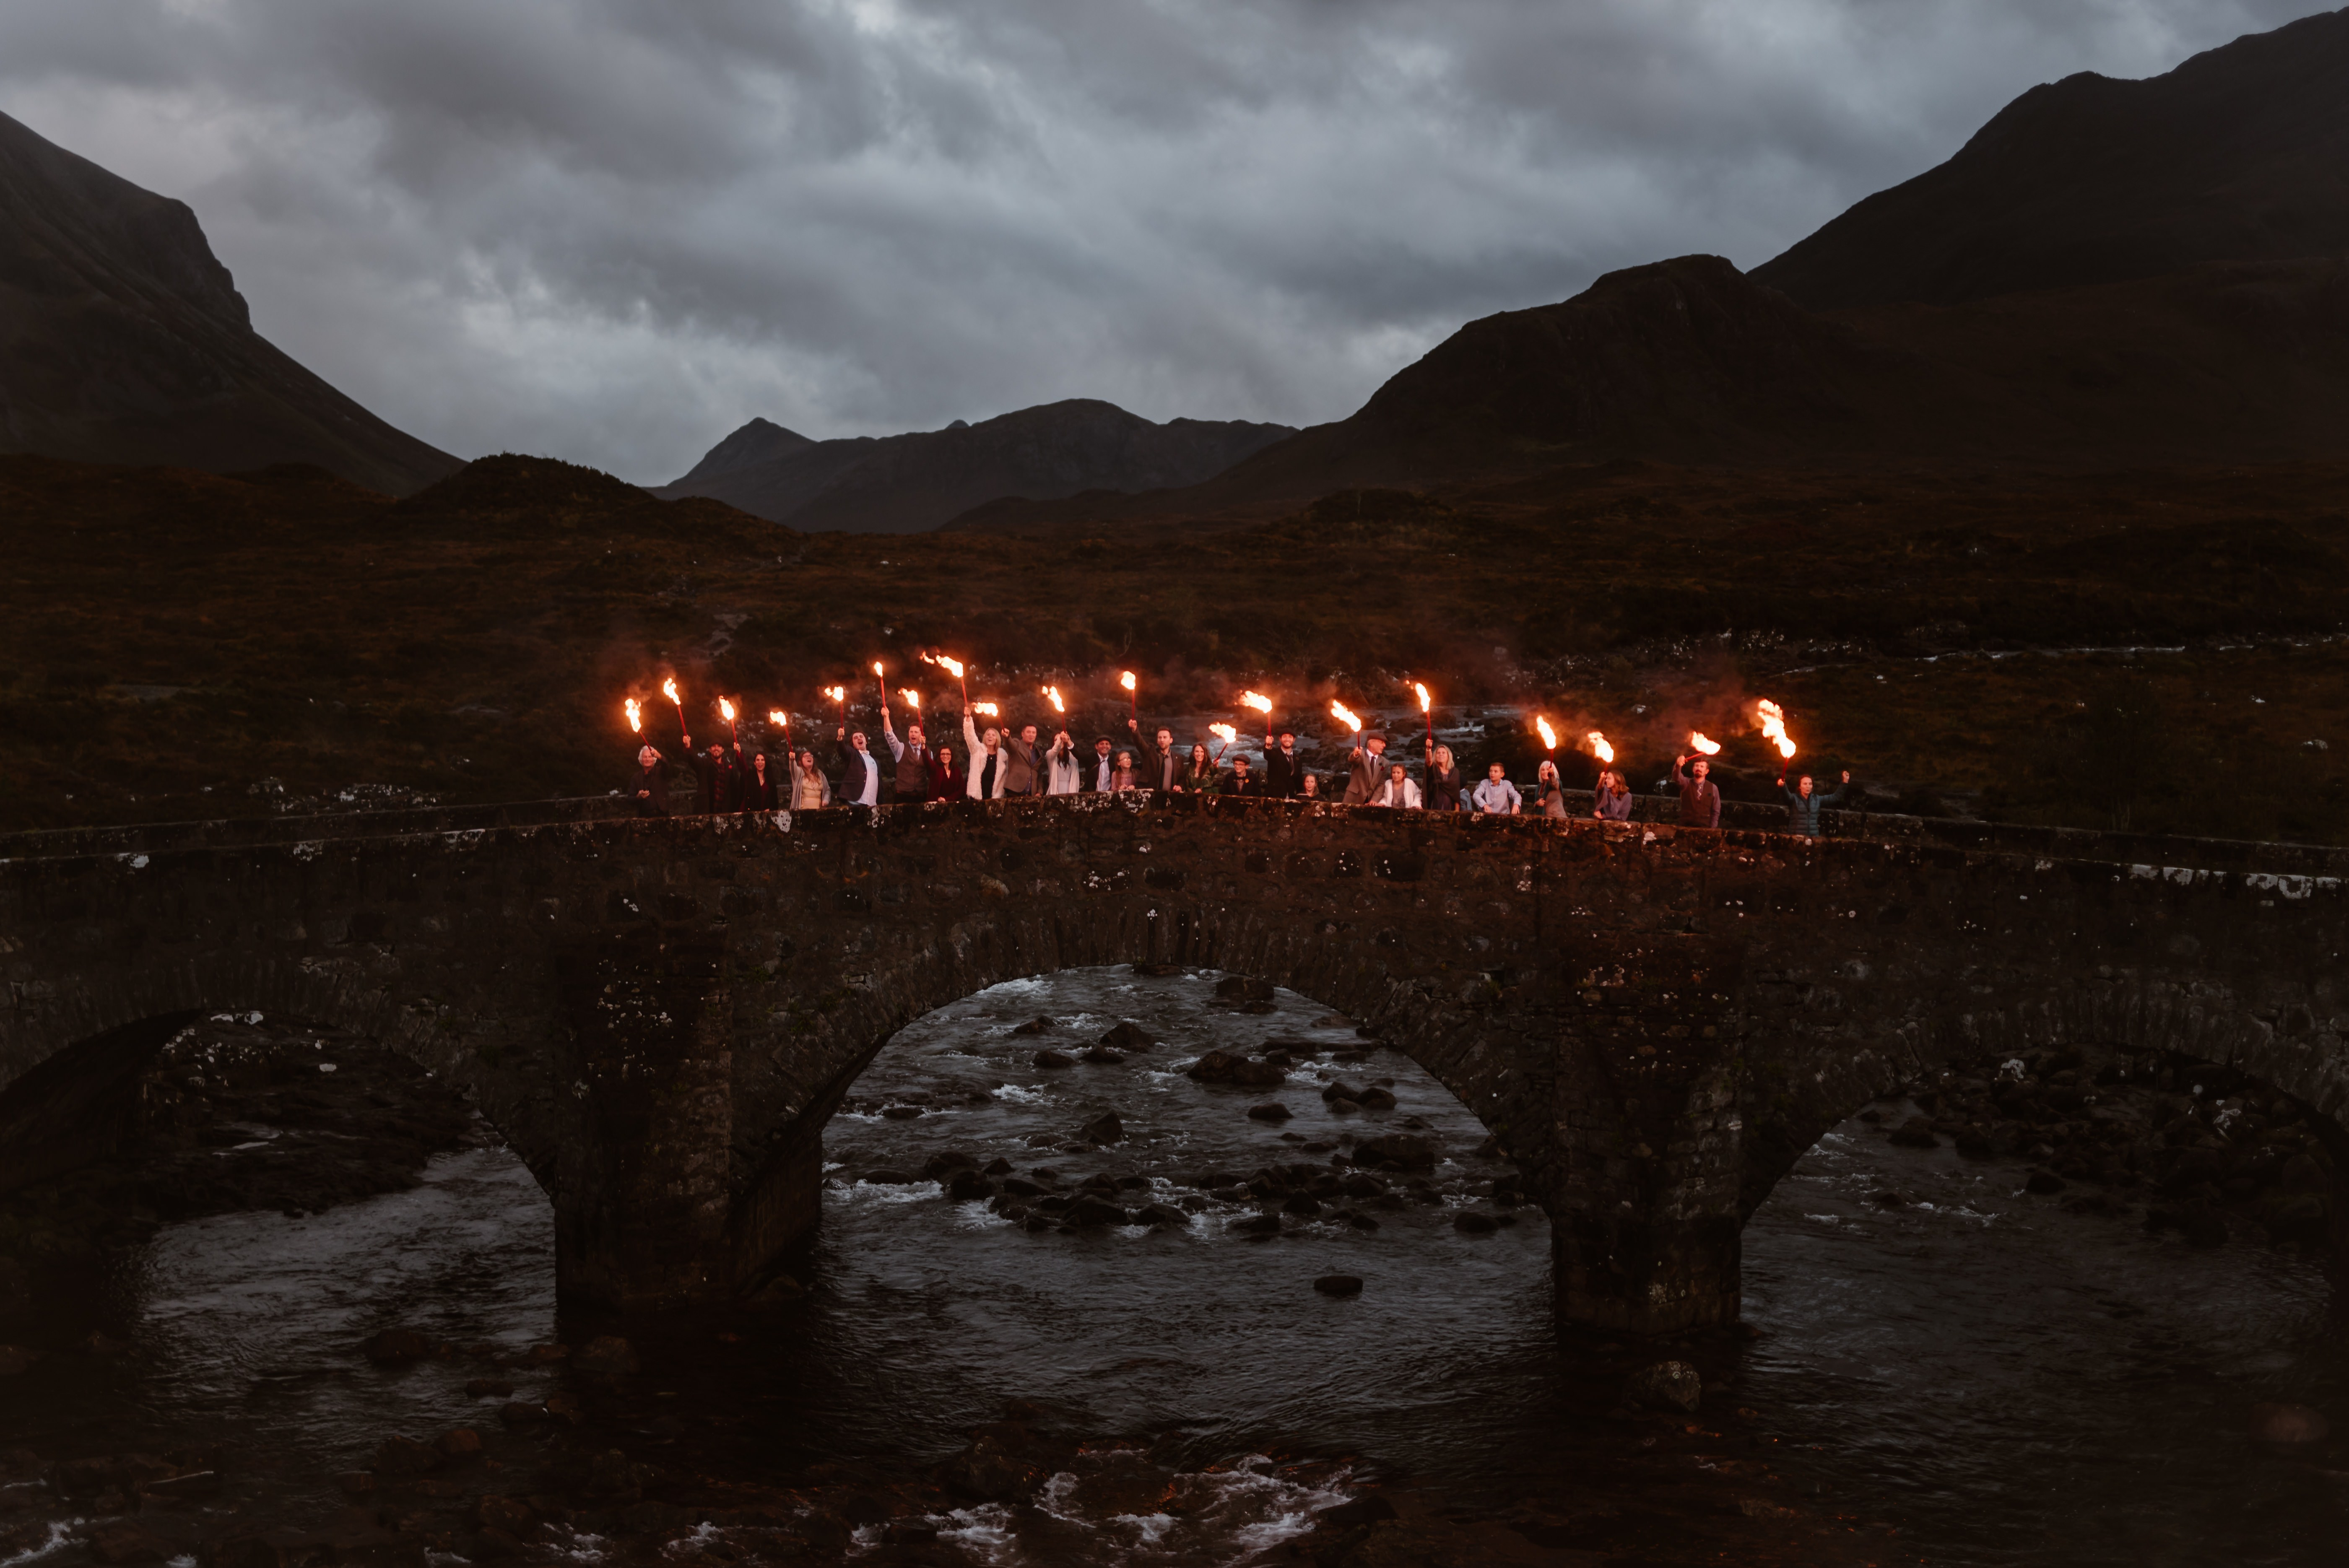 Bridal party with torches on bridge over river - photo by Virginia & Evan - Scotland